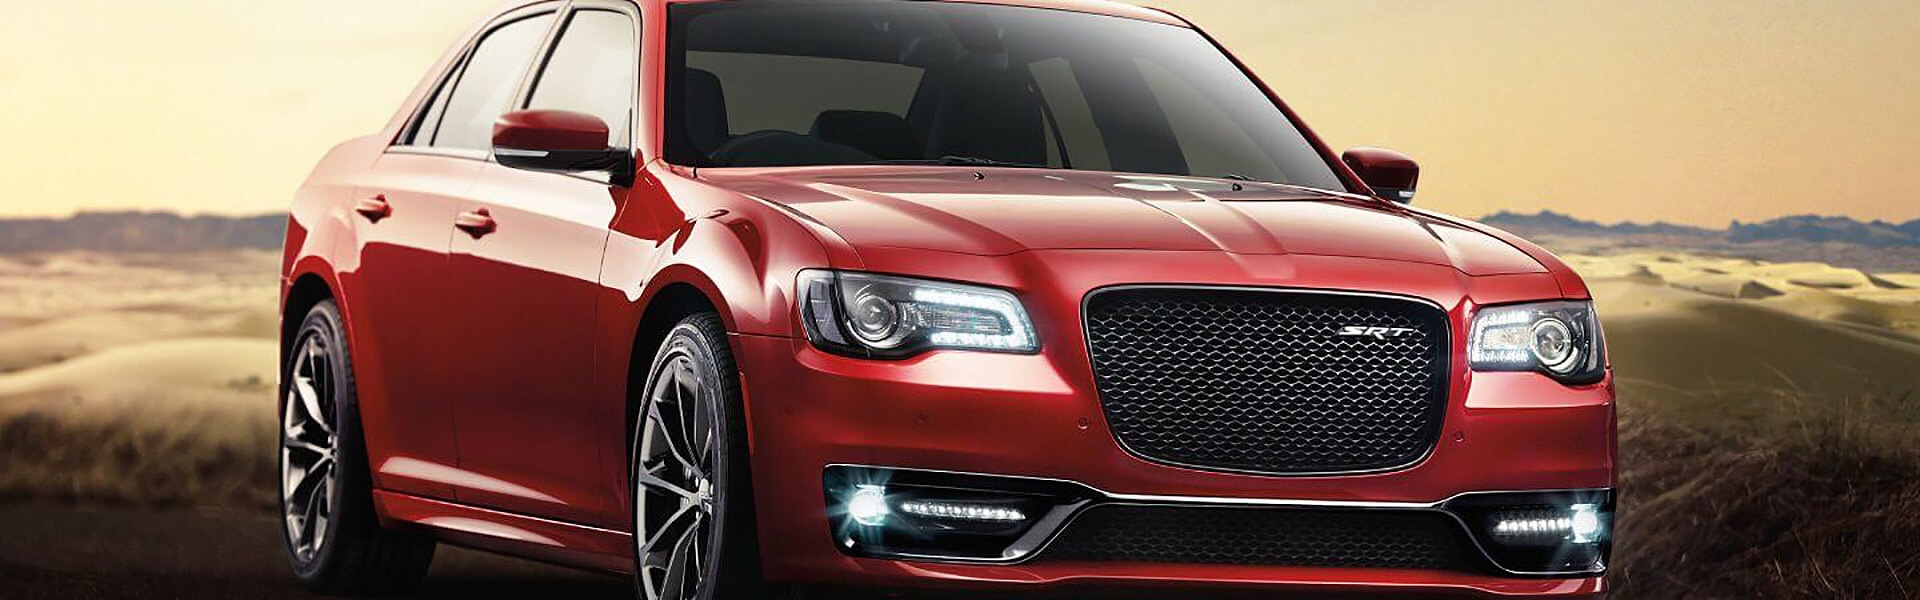 Chrysler 300 SRT Performance